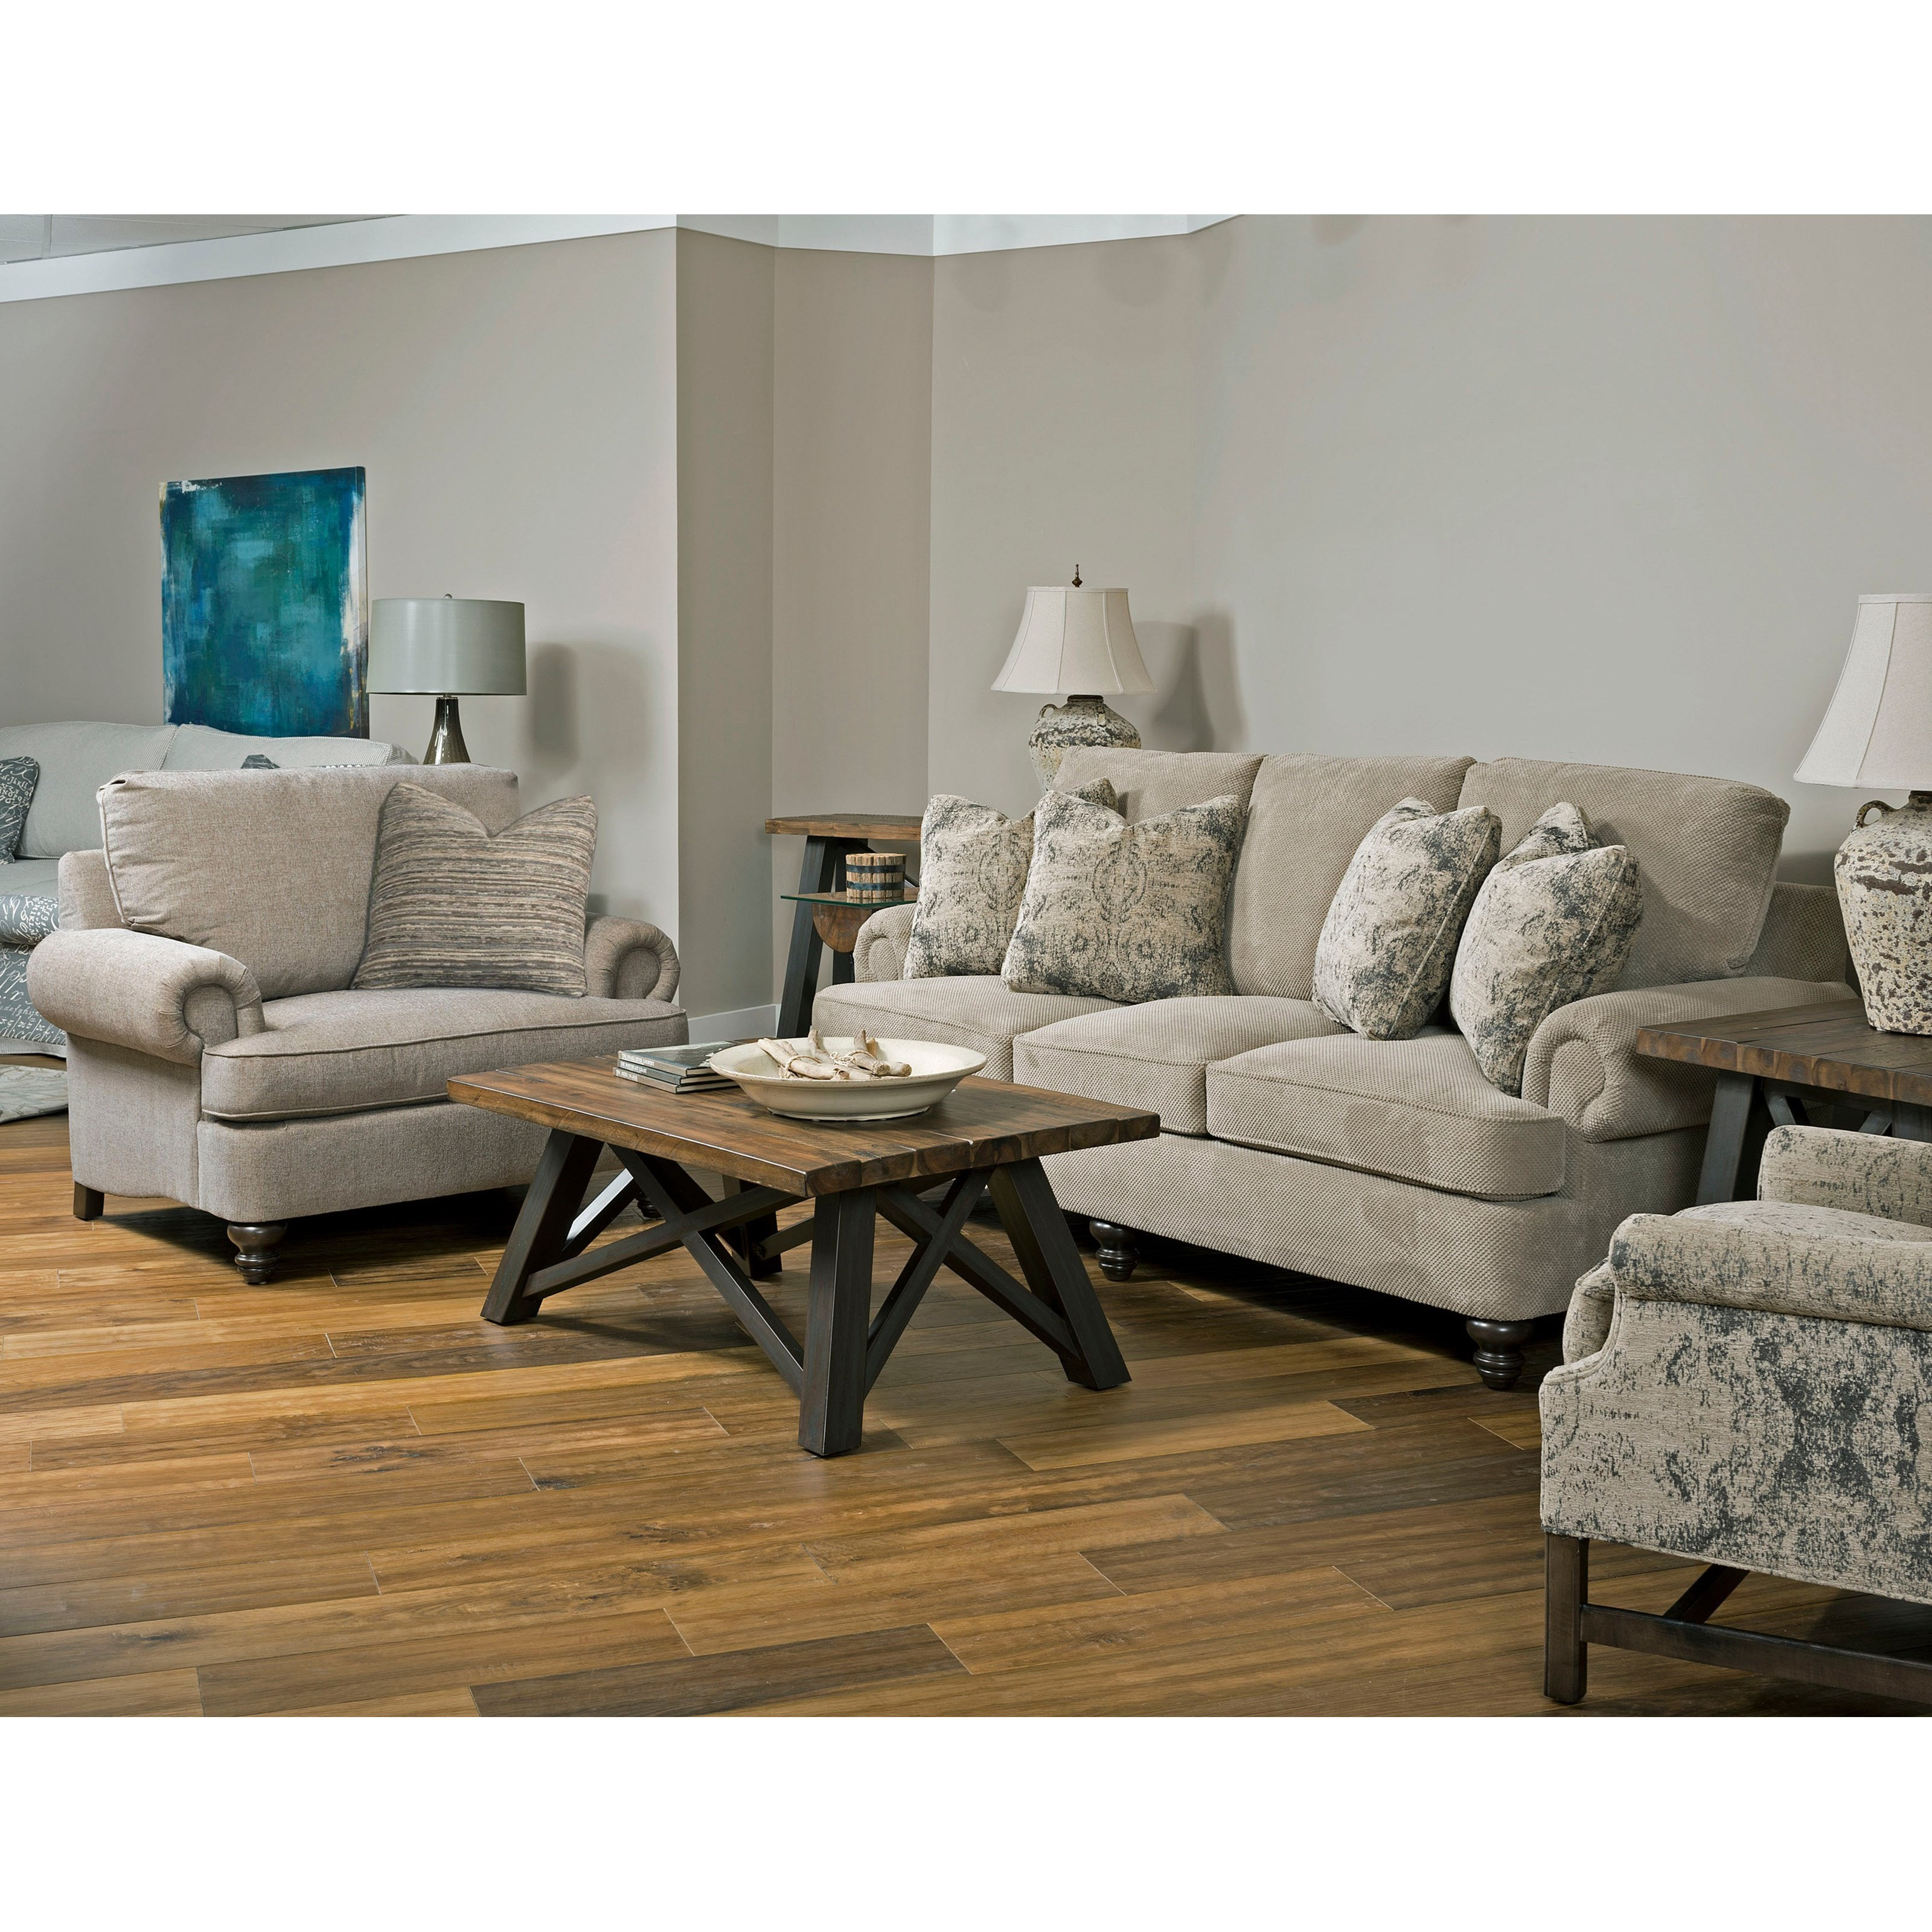 furniture groupings living room furniture avery living room gill brothers 13236